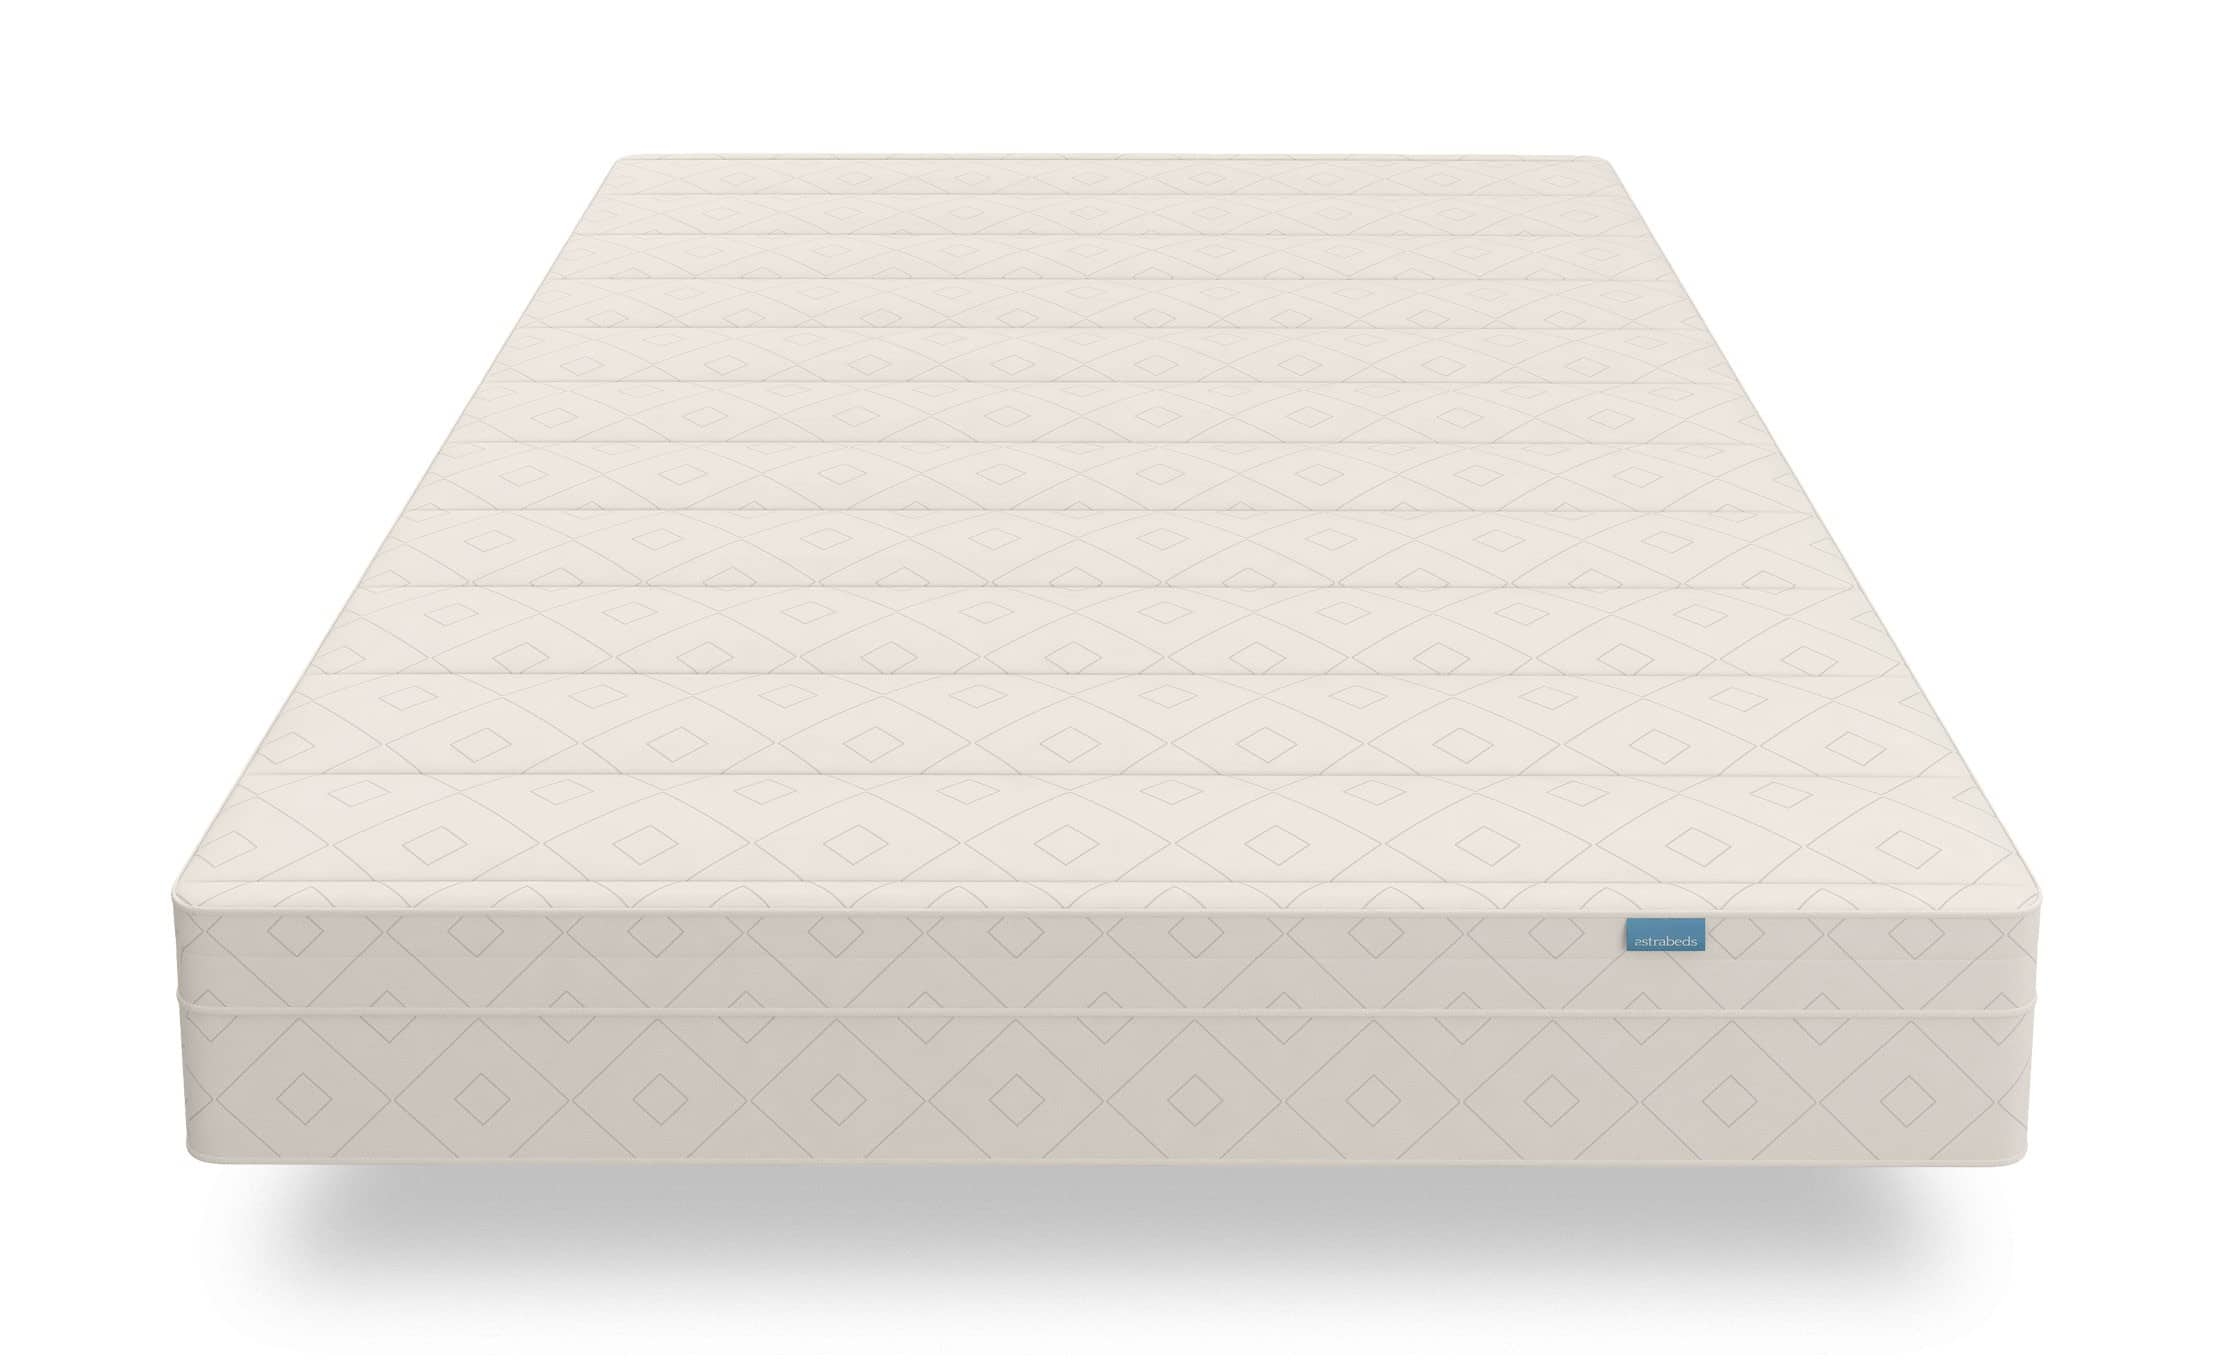 Foam Or Latex Mattresses How To Find The Most Comfortable Mattress Sleep Junkie